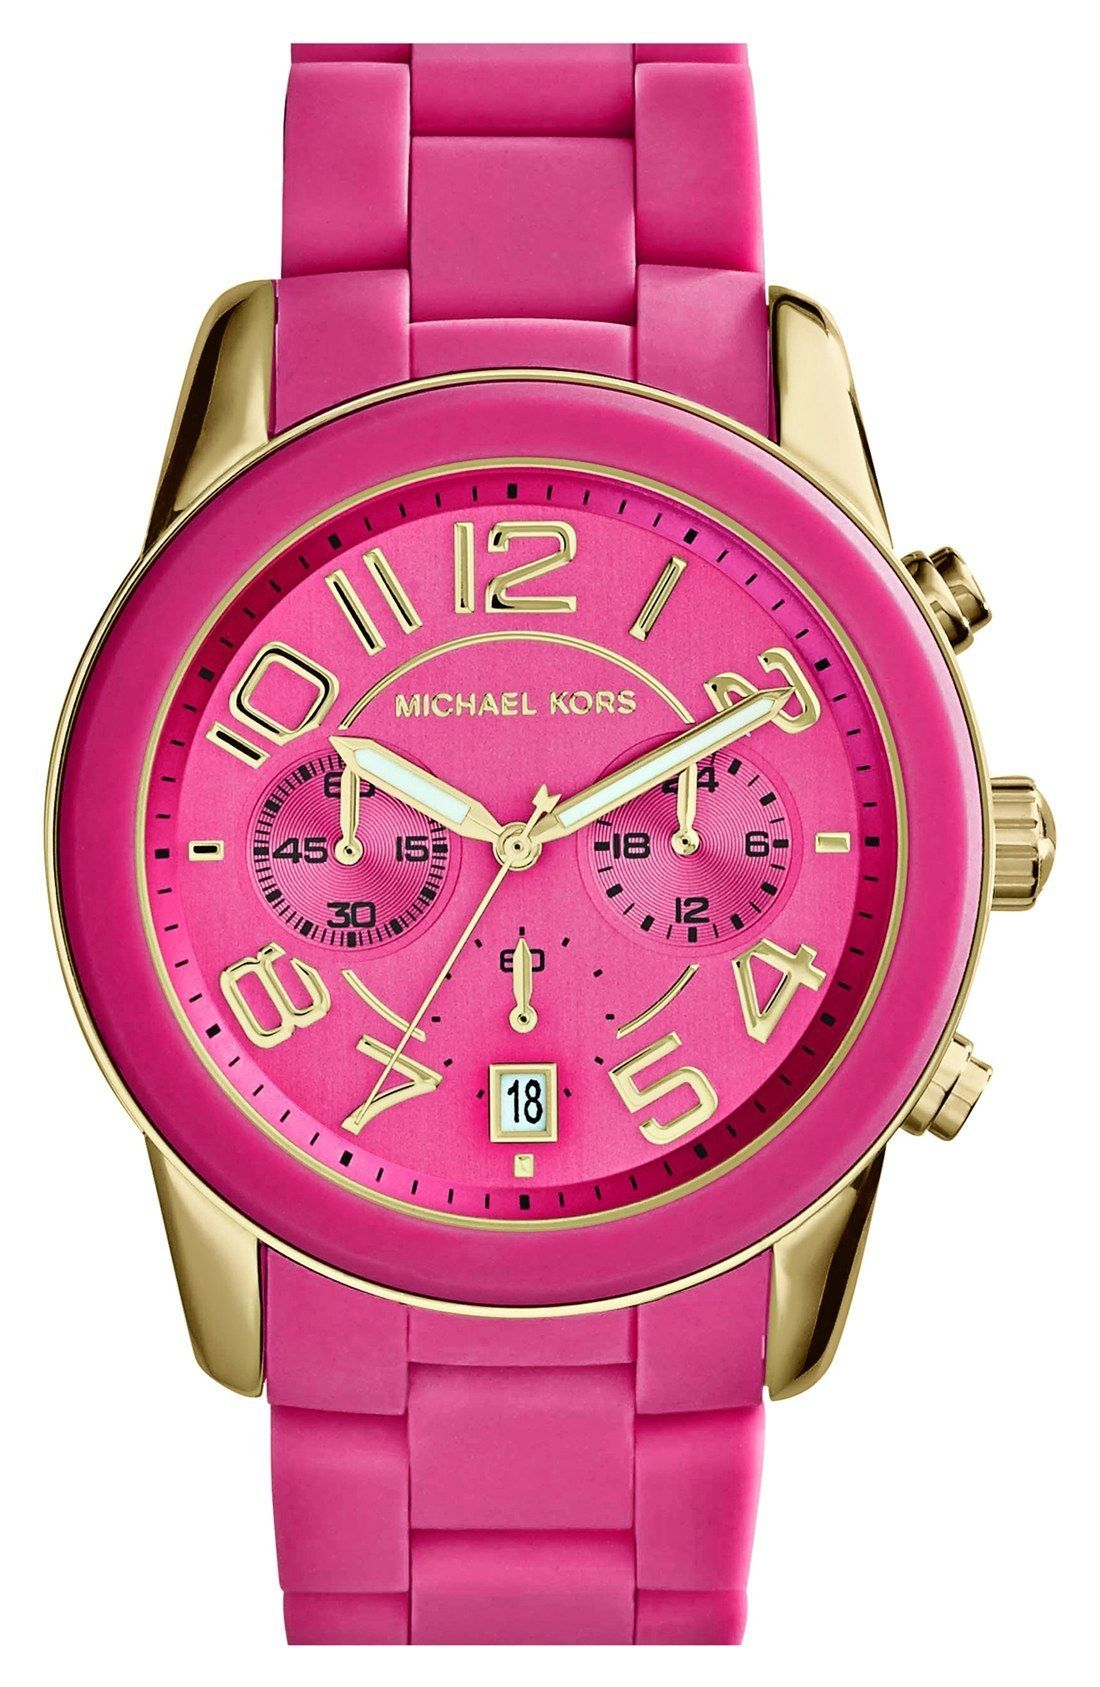 Michael Kors 'Mercer' Chronograph Silicone Strap Watch, 42mm by MICHAEL Michael Kors - Found on HeartThis.com @HeartThis | See item http://www.heartthis.com/product/206944150971686999/